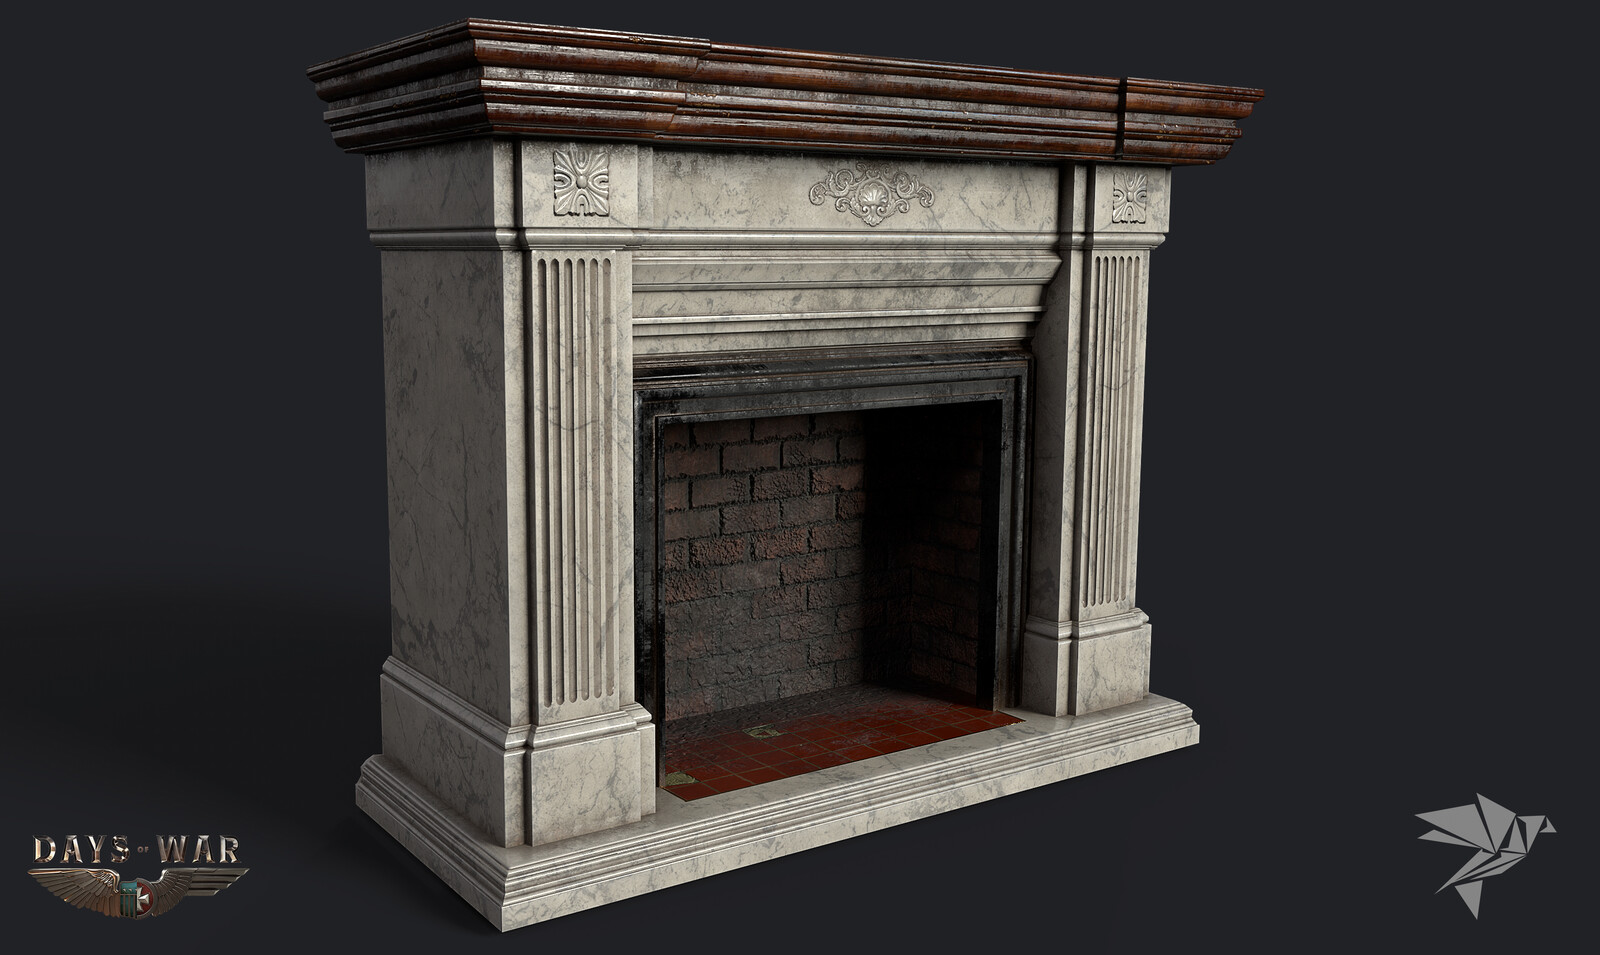 Days of War Fireplace